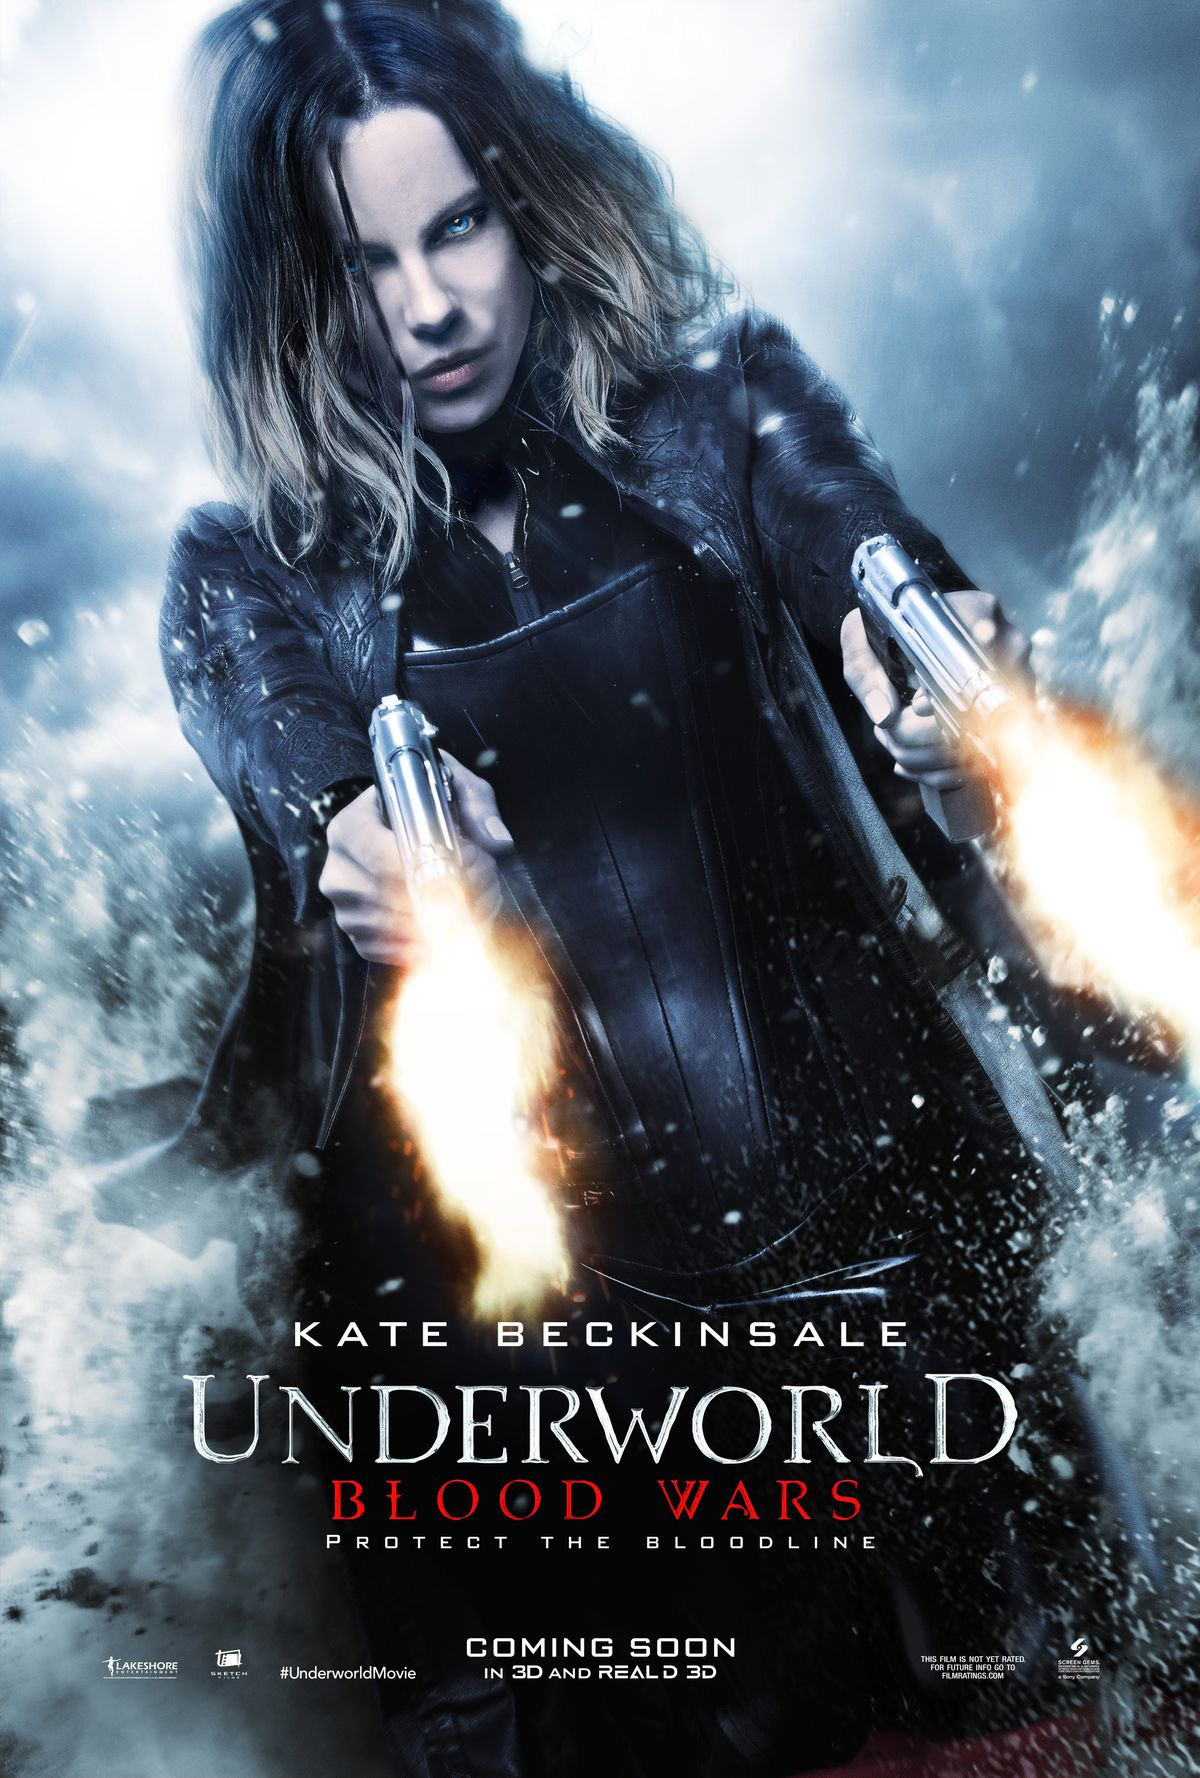 A poster for Underworld: Blood Wars